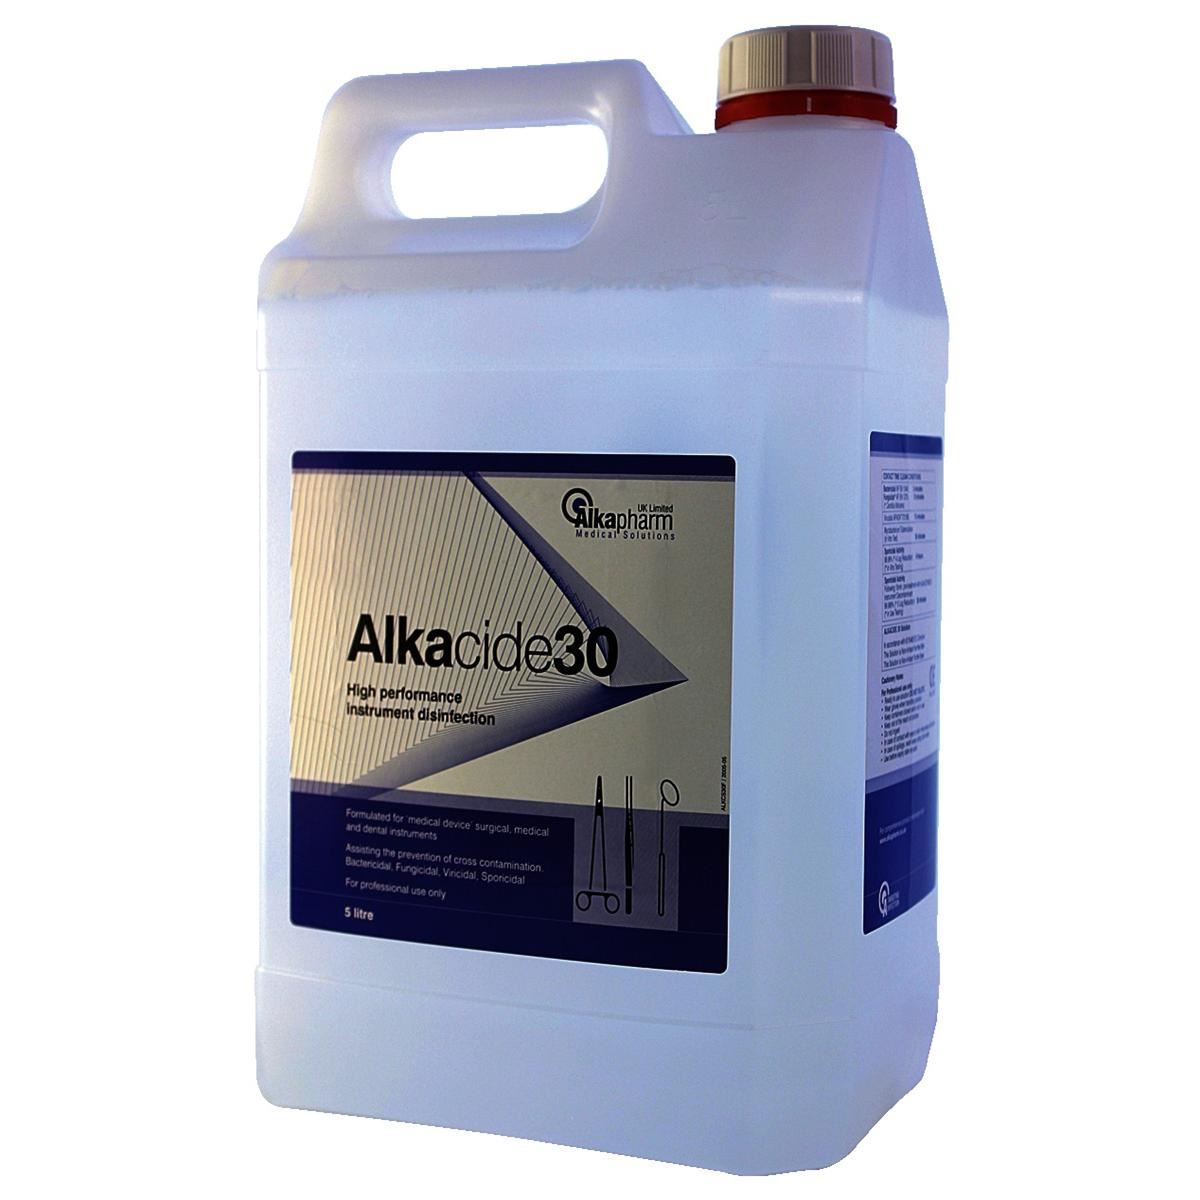 Picture for category Alkacide 30 Instrument Disinfectant